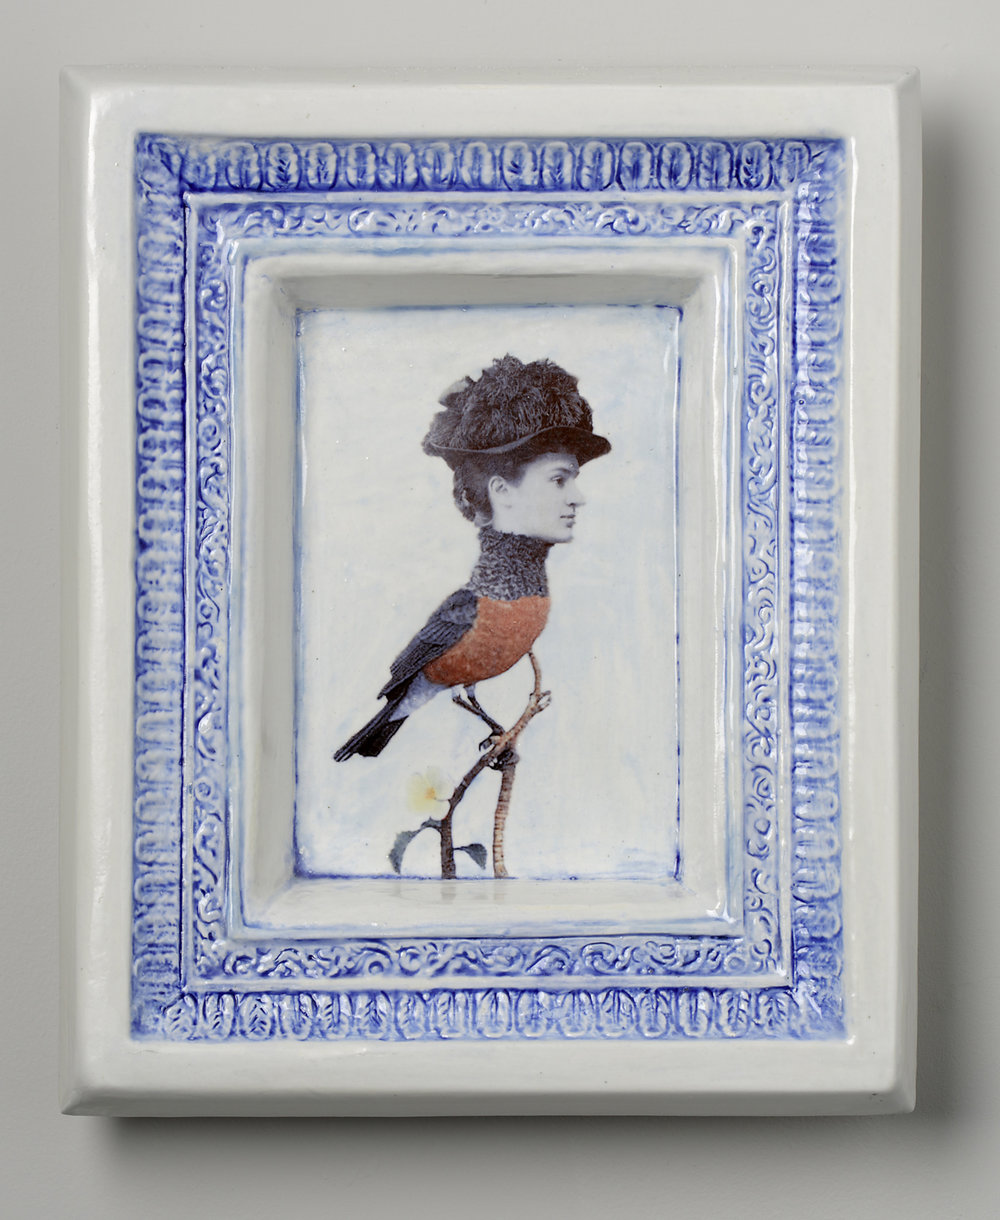 "Cynthia Consentino,  Framed: Victorian Birdie , 2014, earthenware, glaze, ceramics decals, 10 ¾ x 8 ¾ x 2"", Courtesy   of the artist"